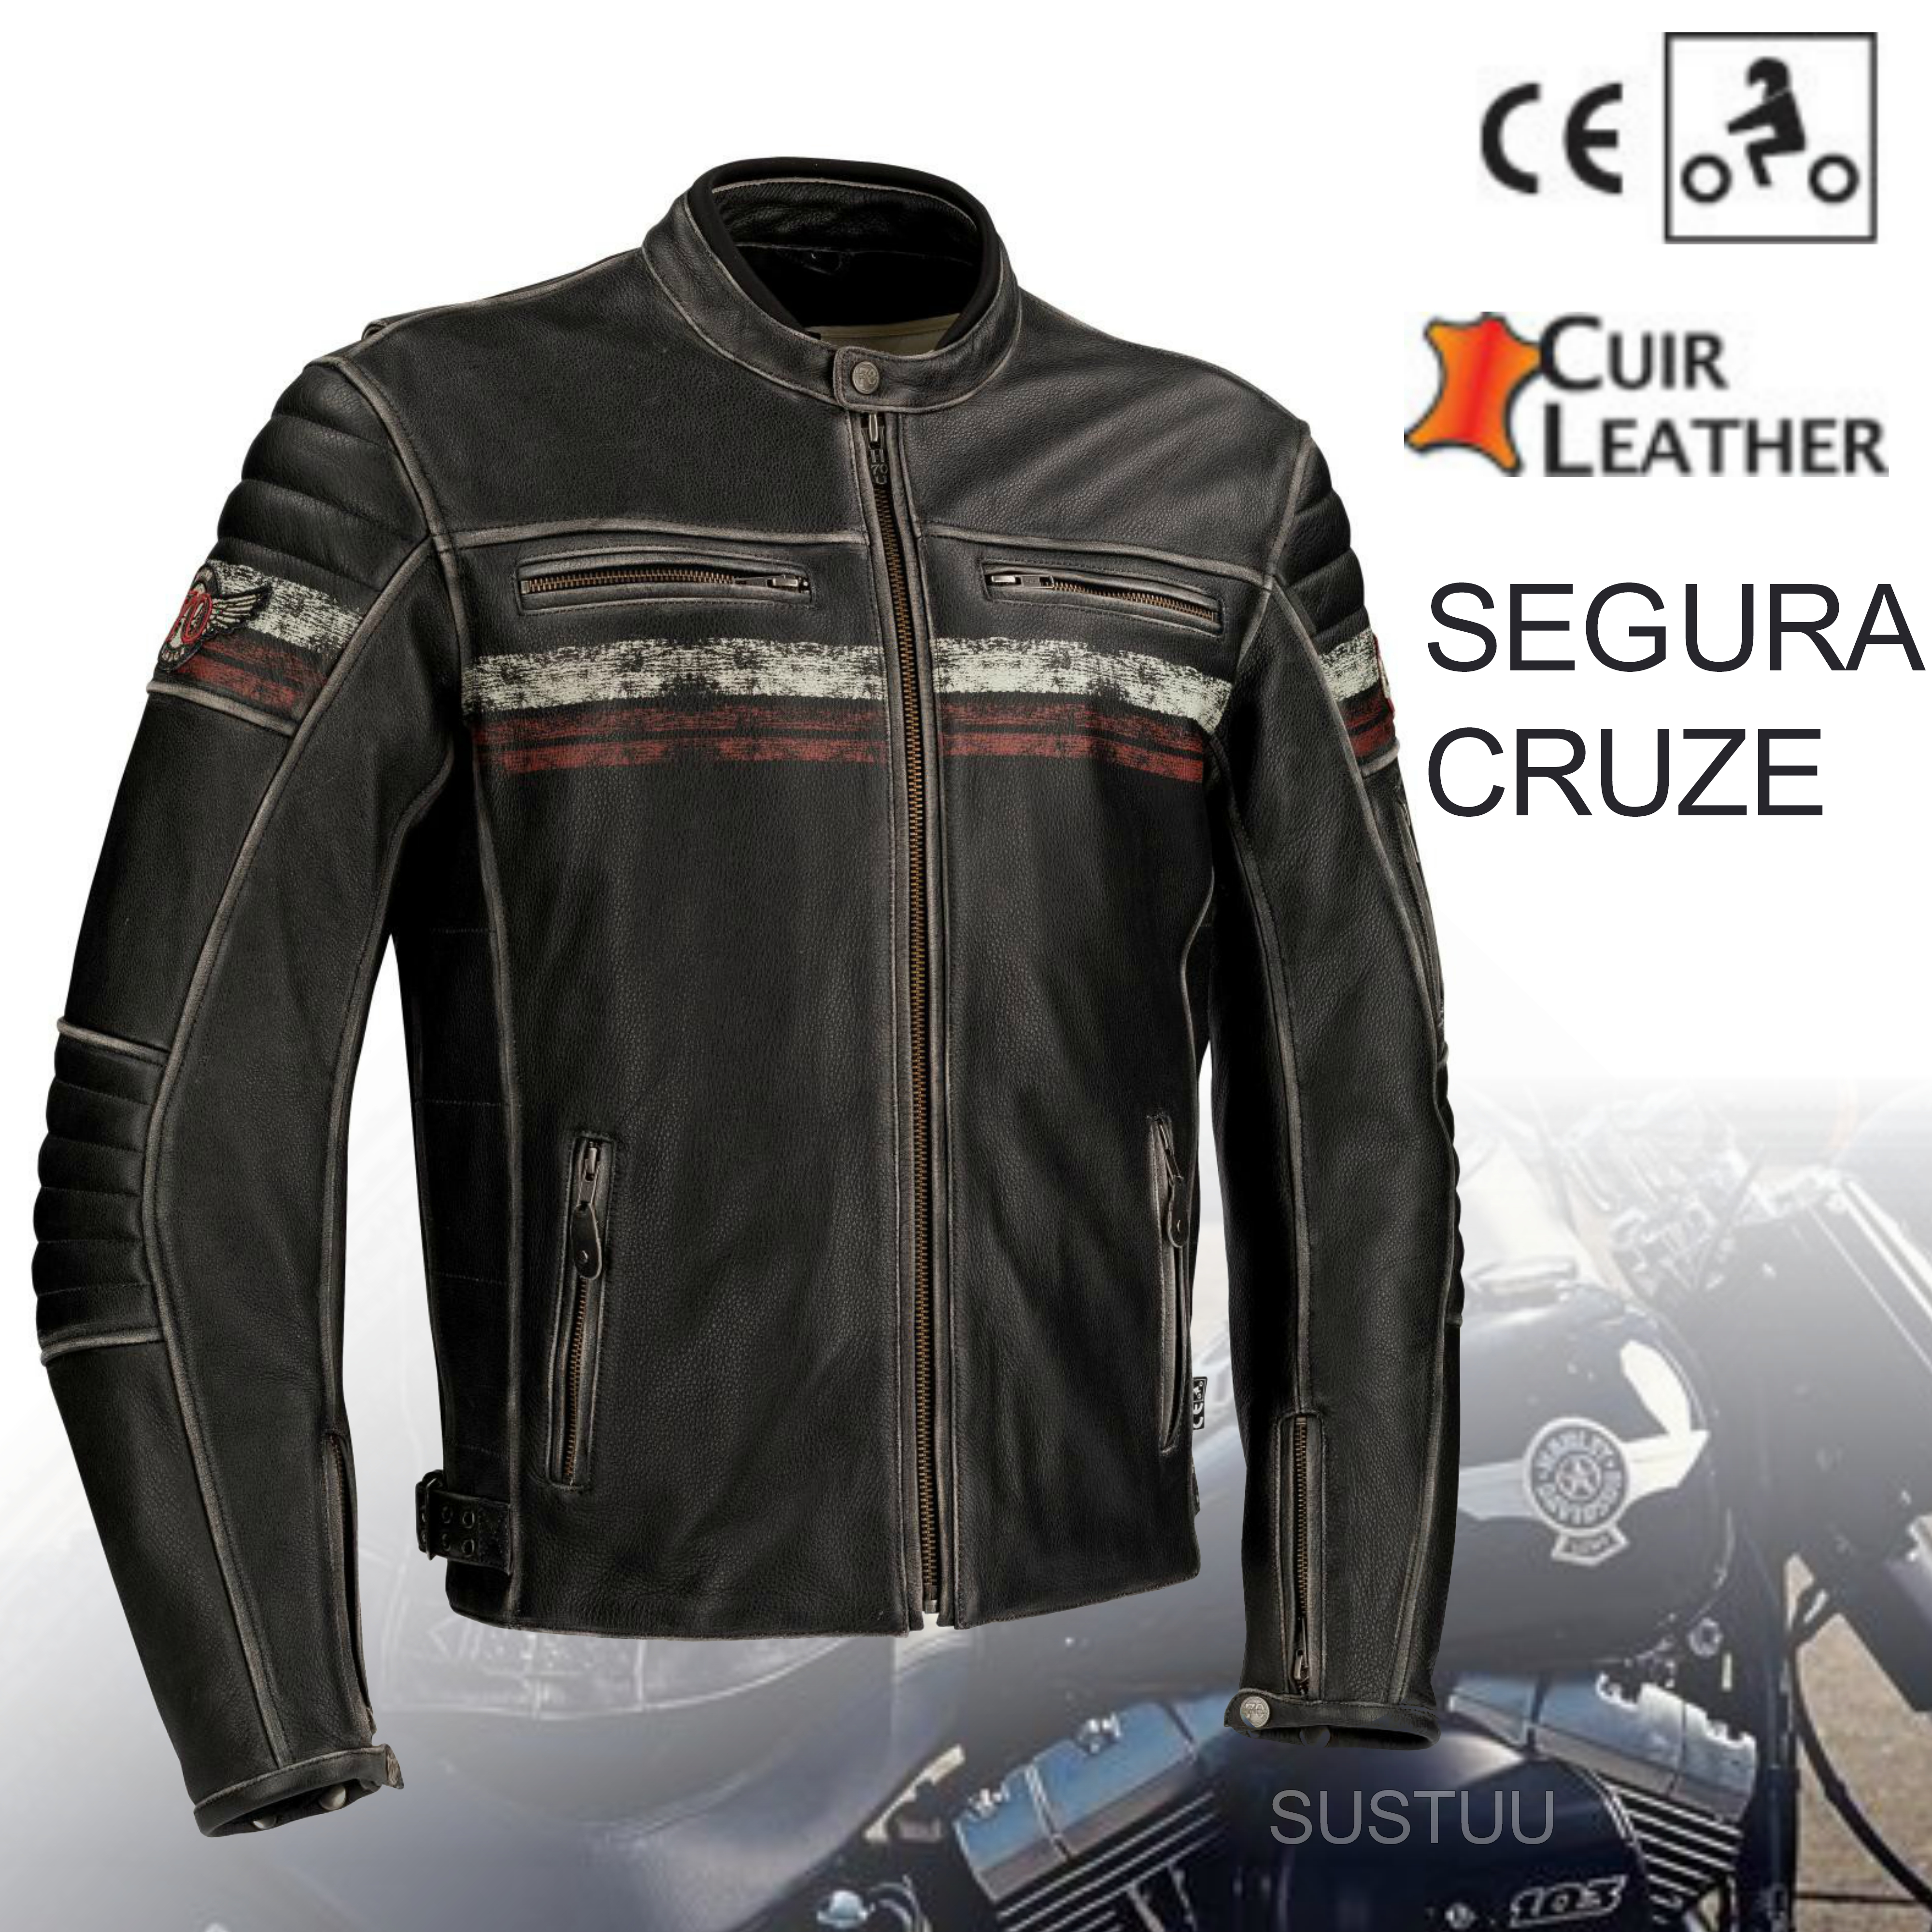 New Segura Cruze Motorcycle Men Leather Jacket|Summer|Vintage Style|CE Approved|Black